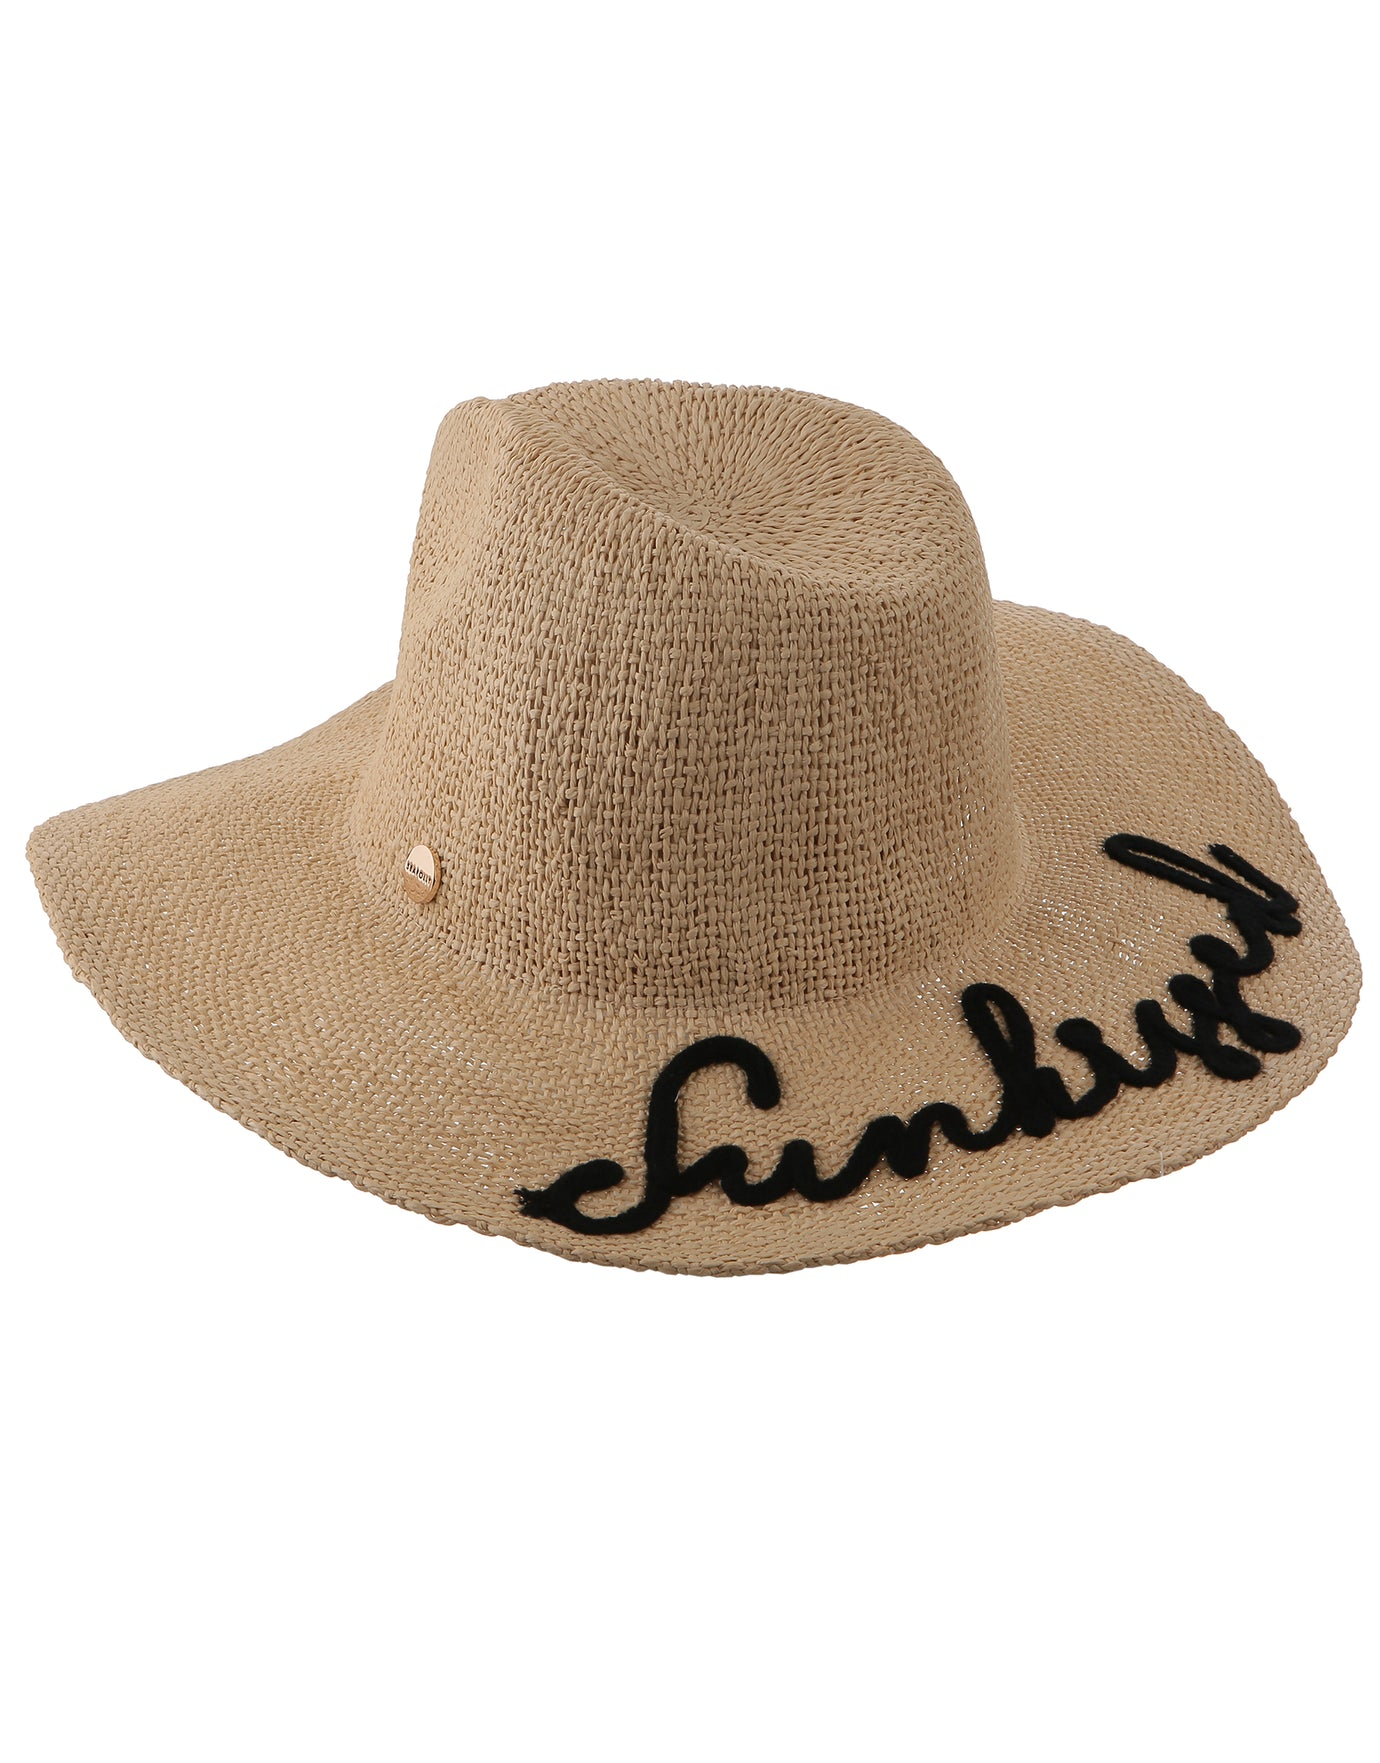 Seafolly Shady Lady Sunkissed Embroidered Fedora Hat - Natural